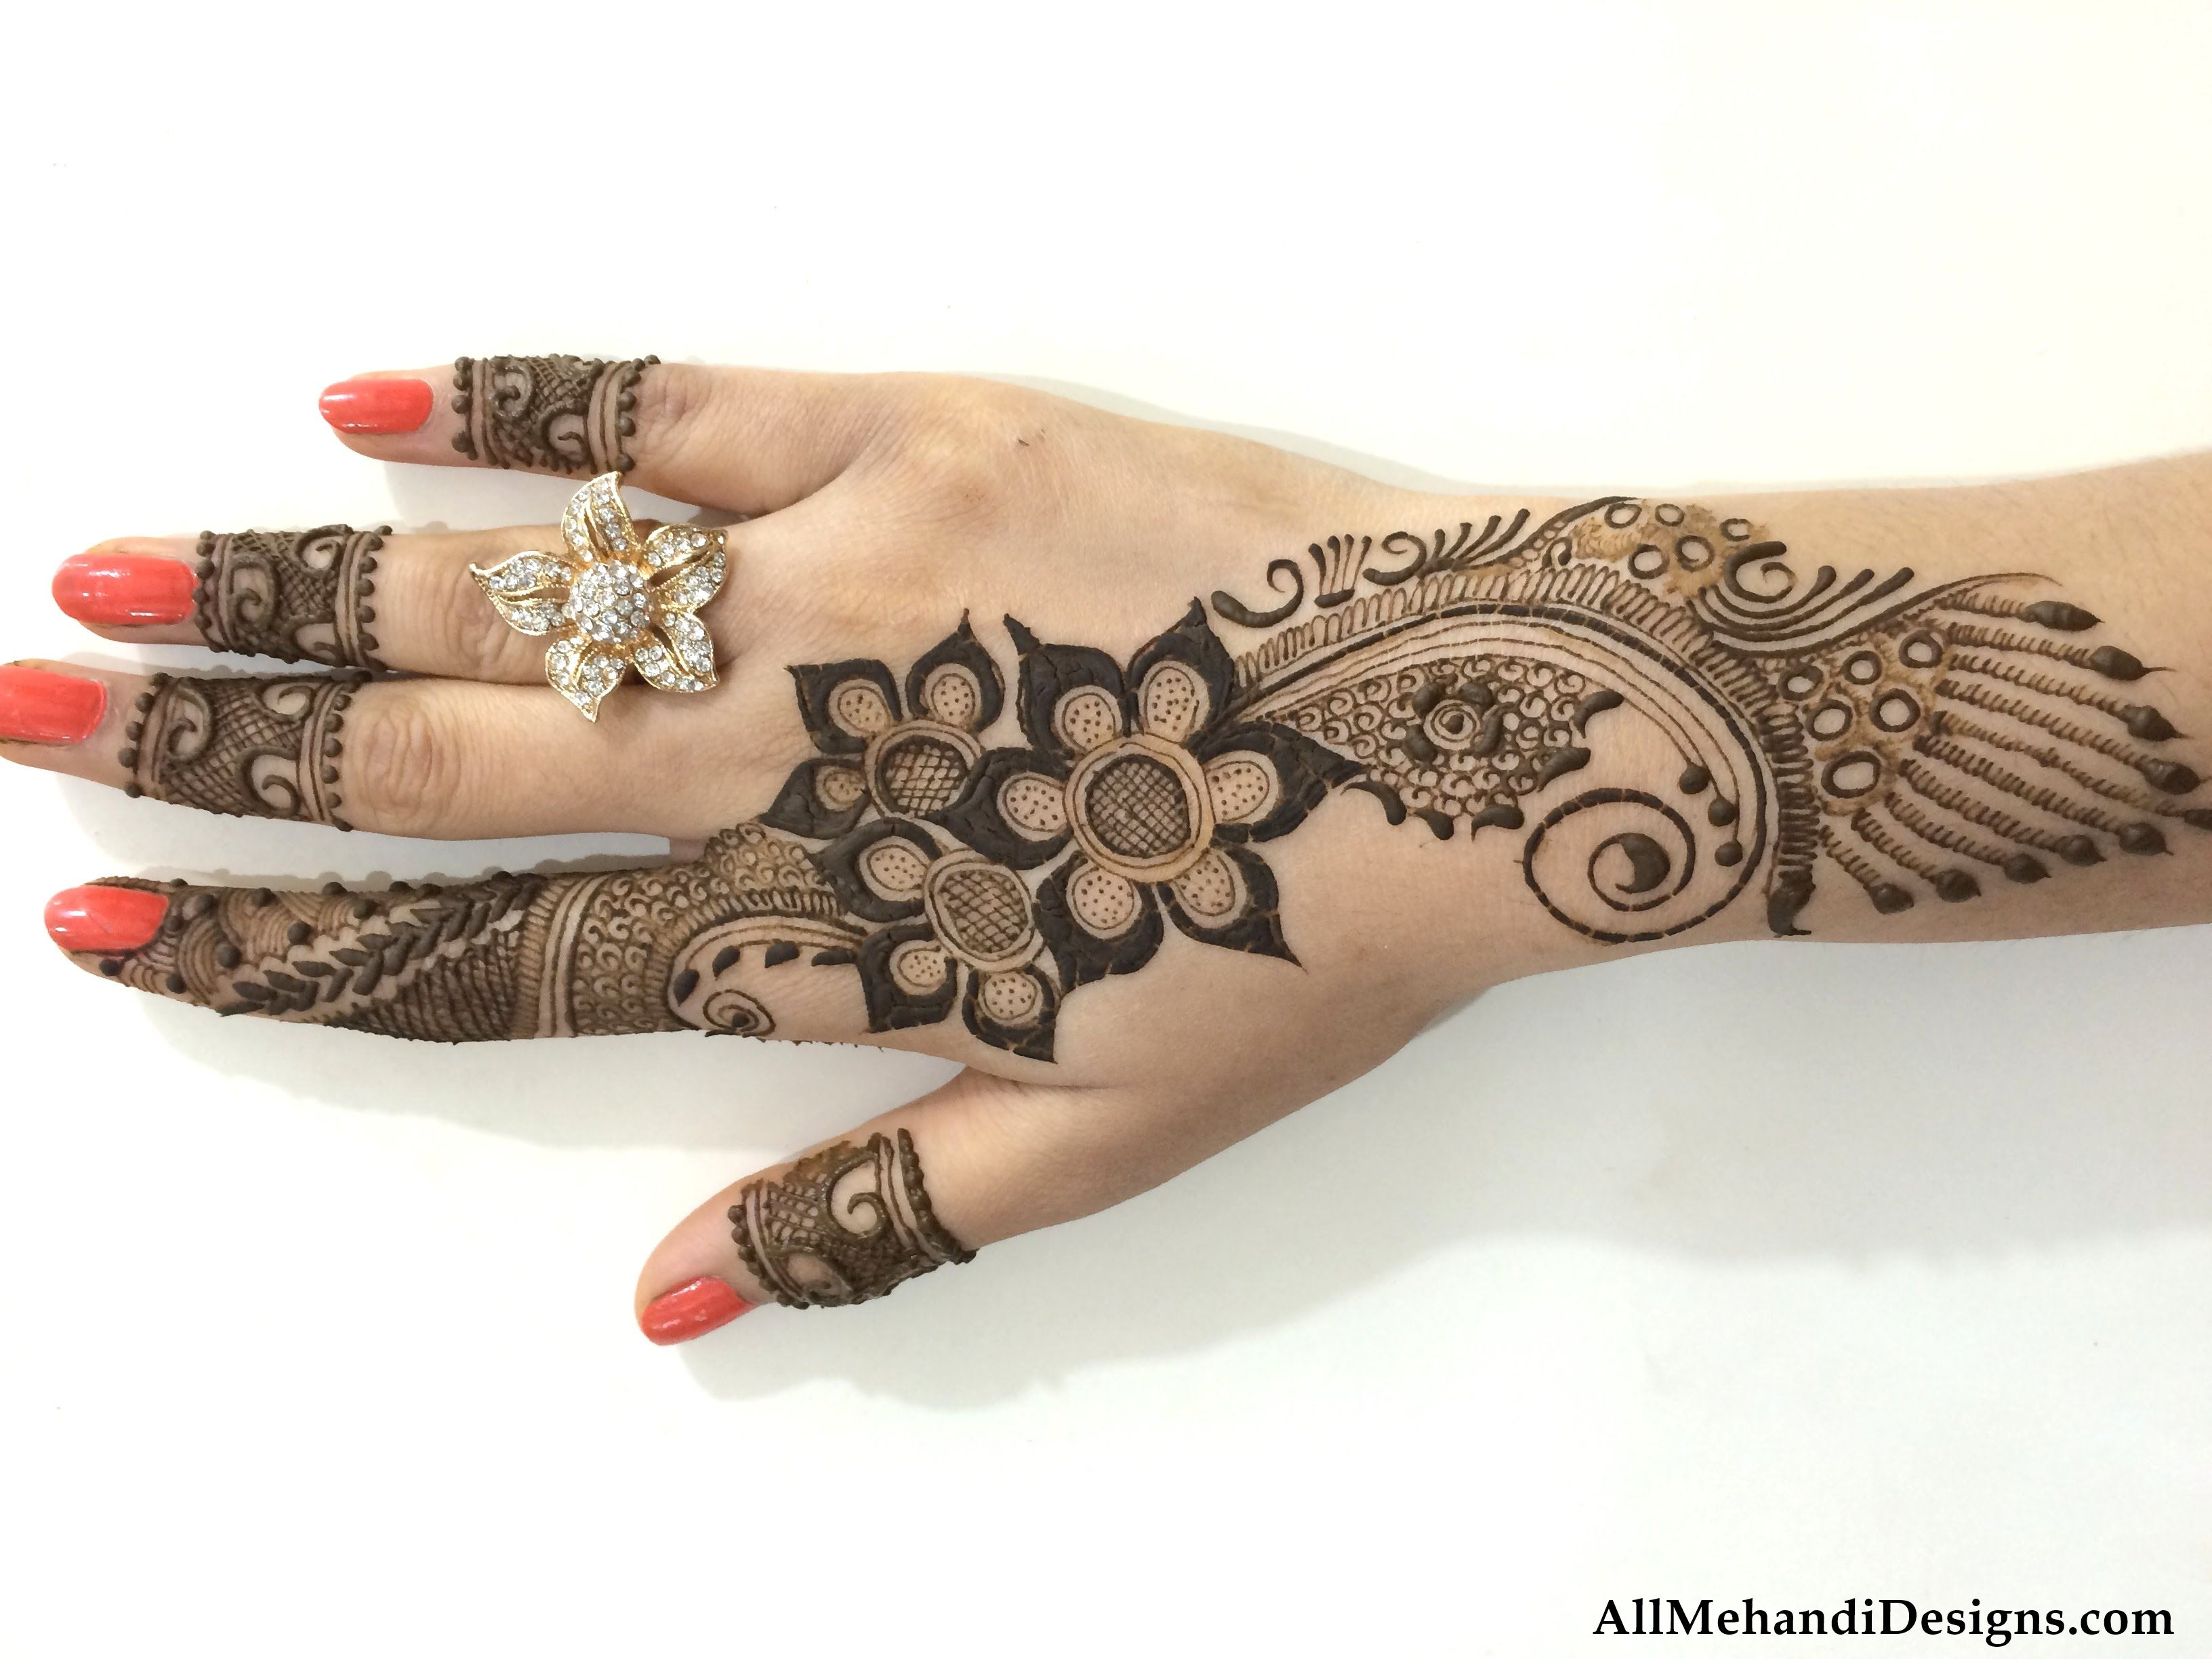 mehndi design mehandi designs mehendi design mehndi design images mehndi patterns simple floral mehndi design